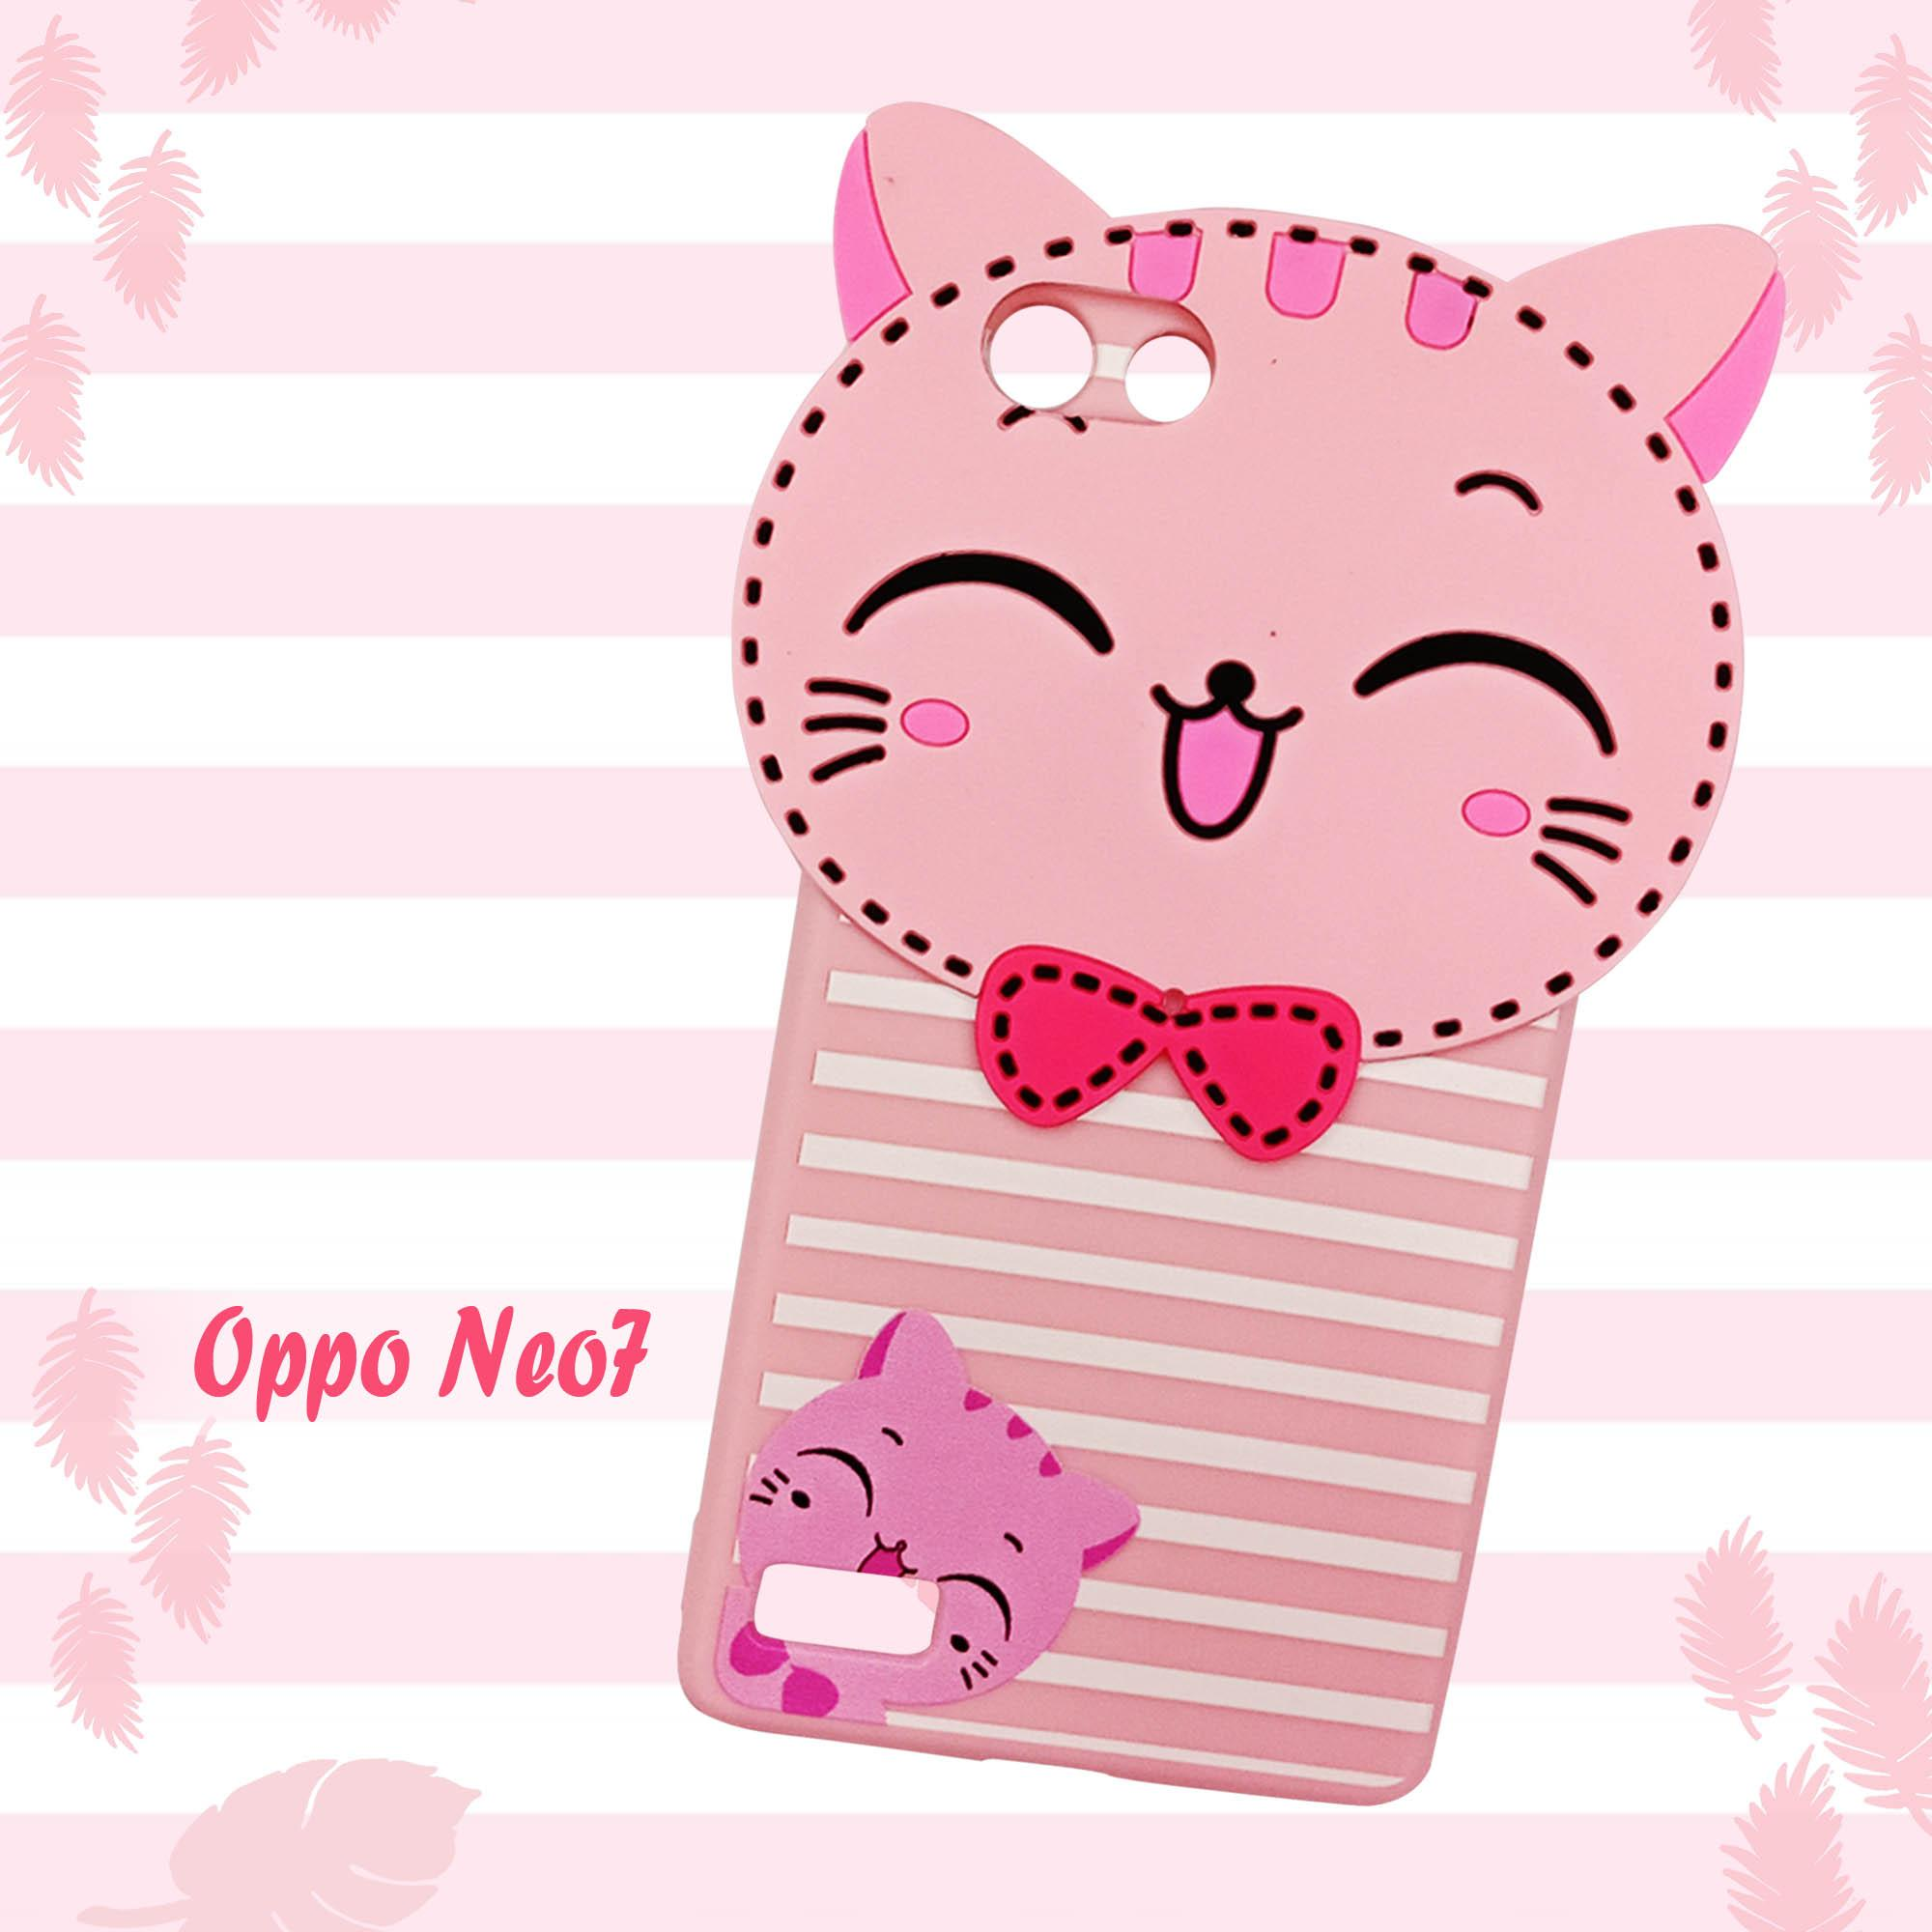 Marintri Case Oppo Neo 7 New Fashion Cat 3D